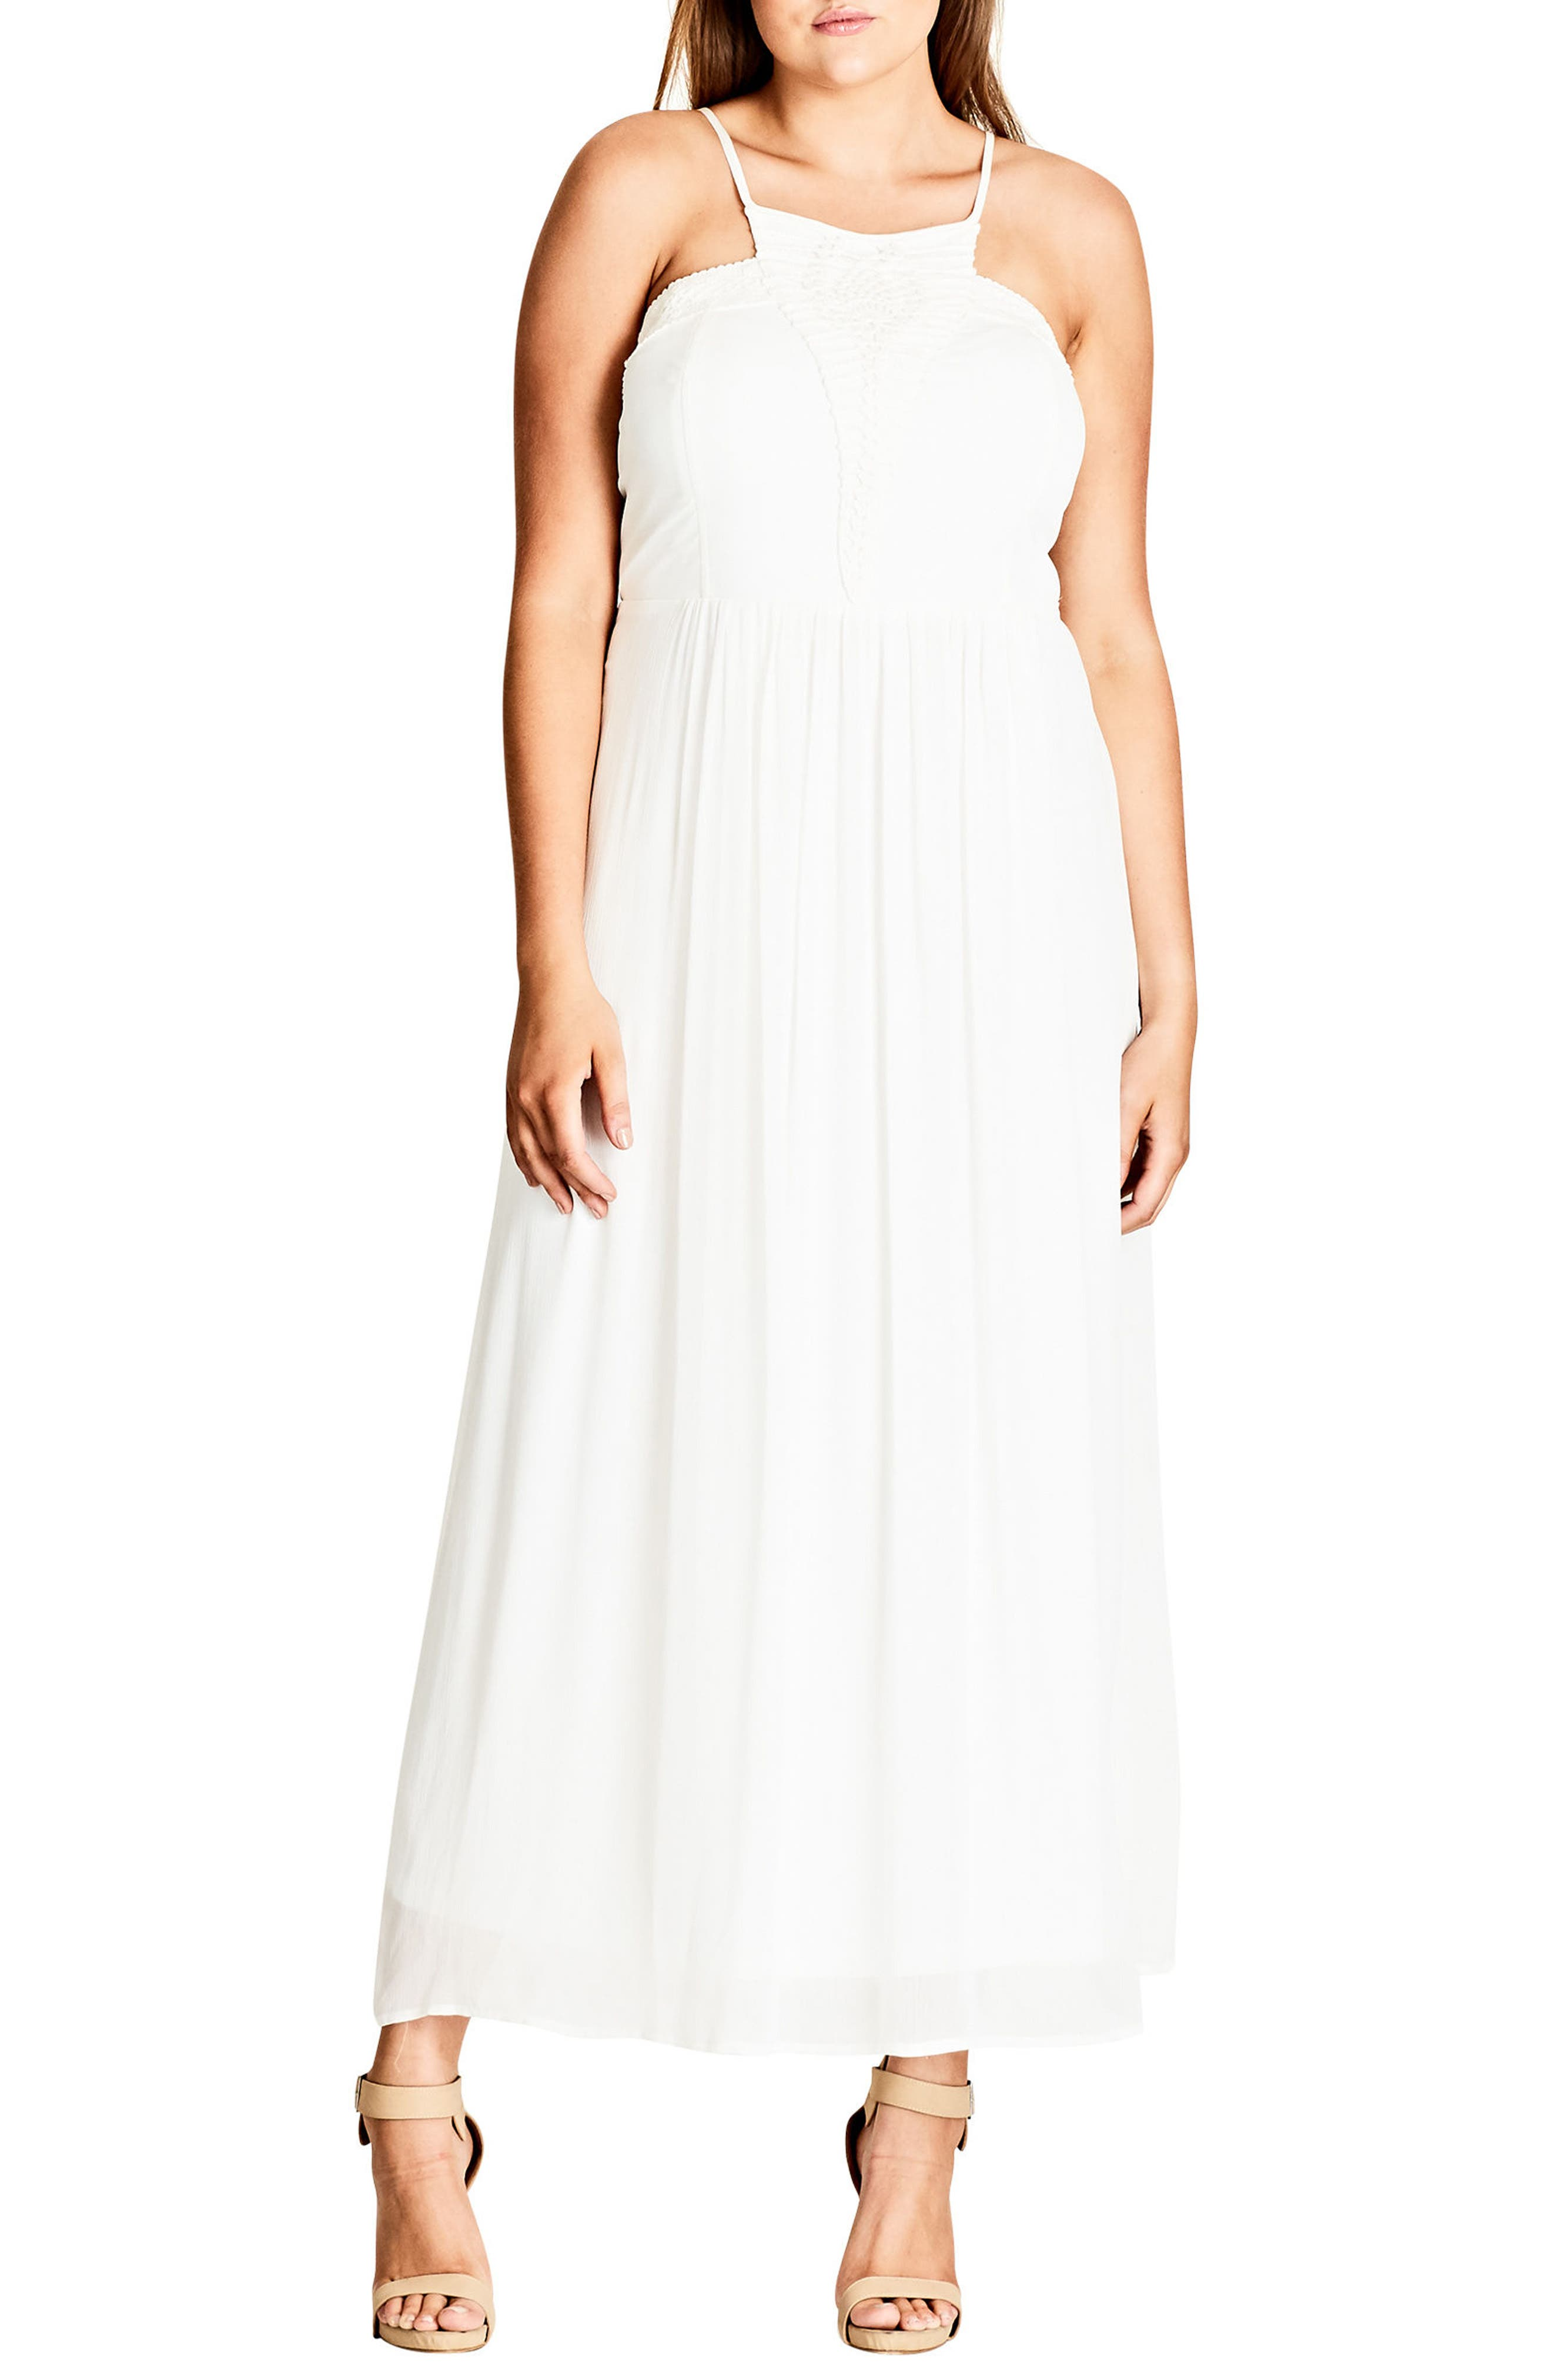 Purity Halter Style Maxi Dress,                         Main,                         color, 909